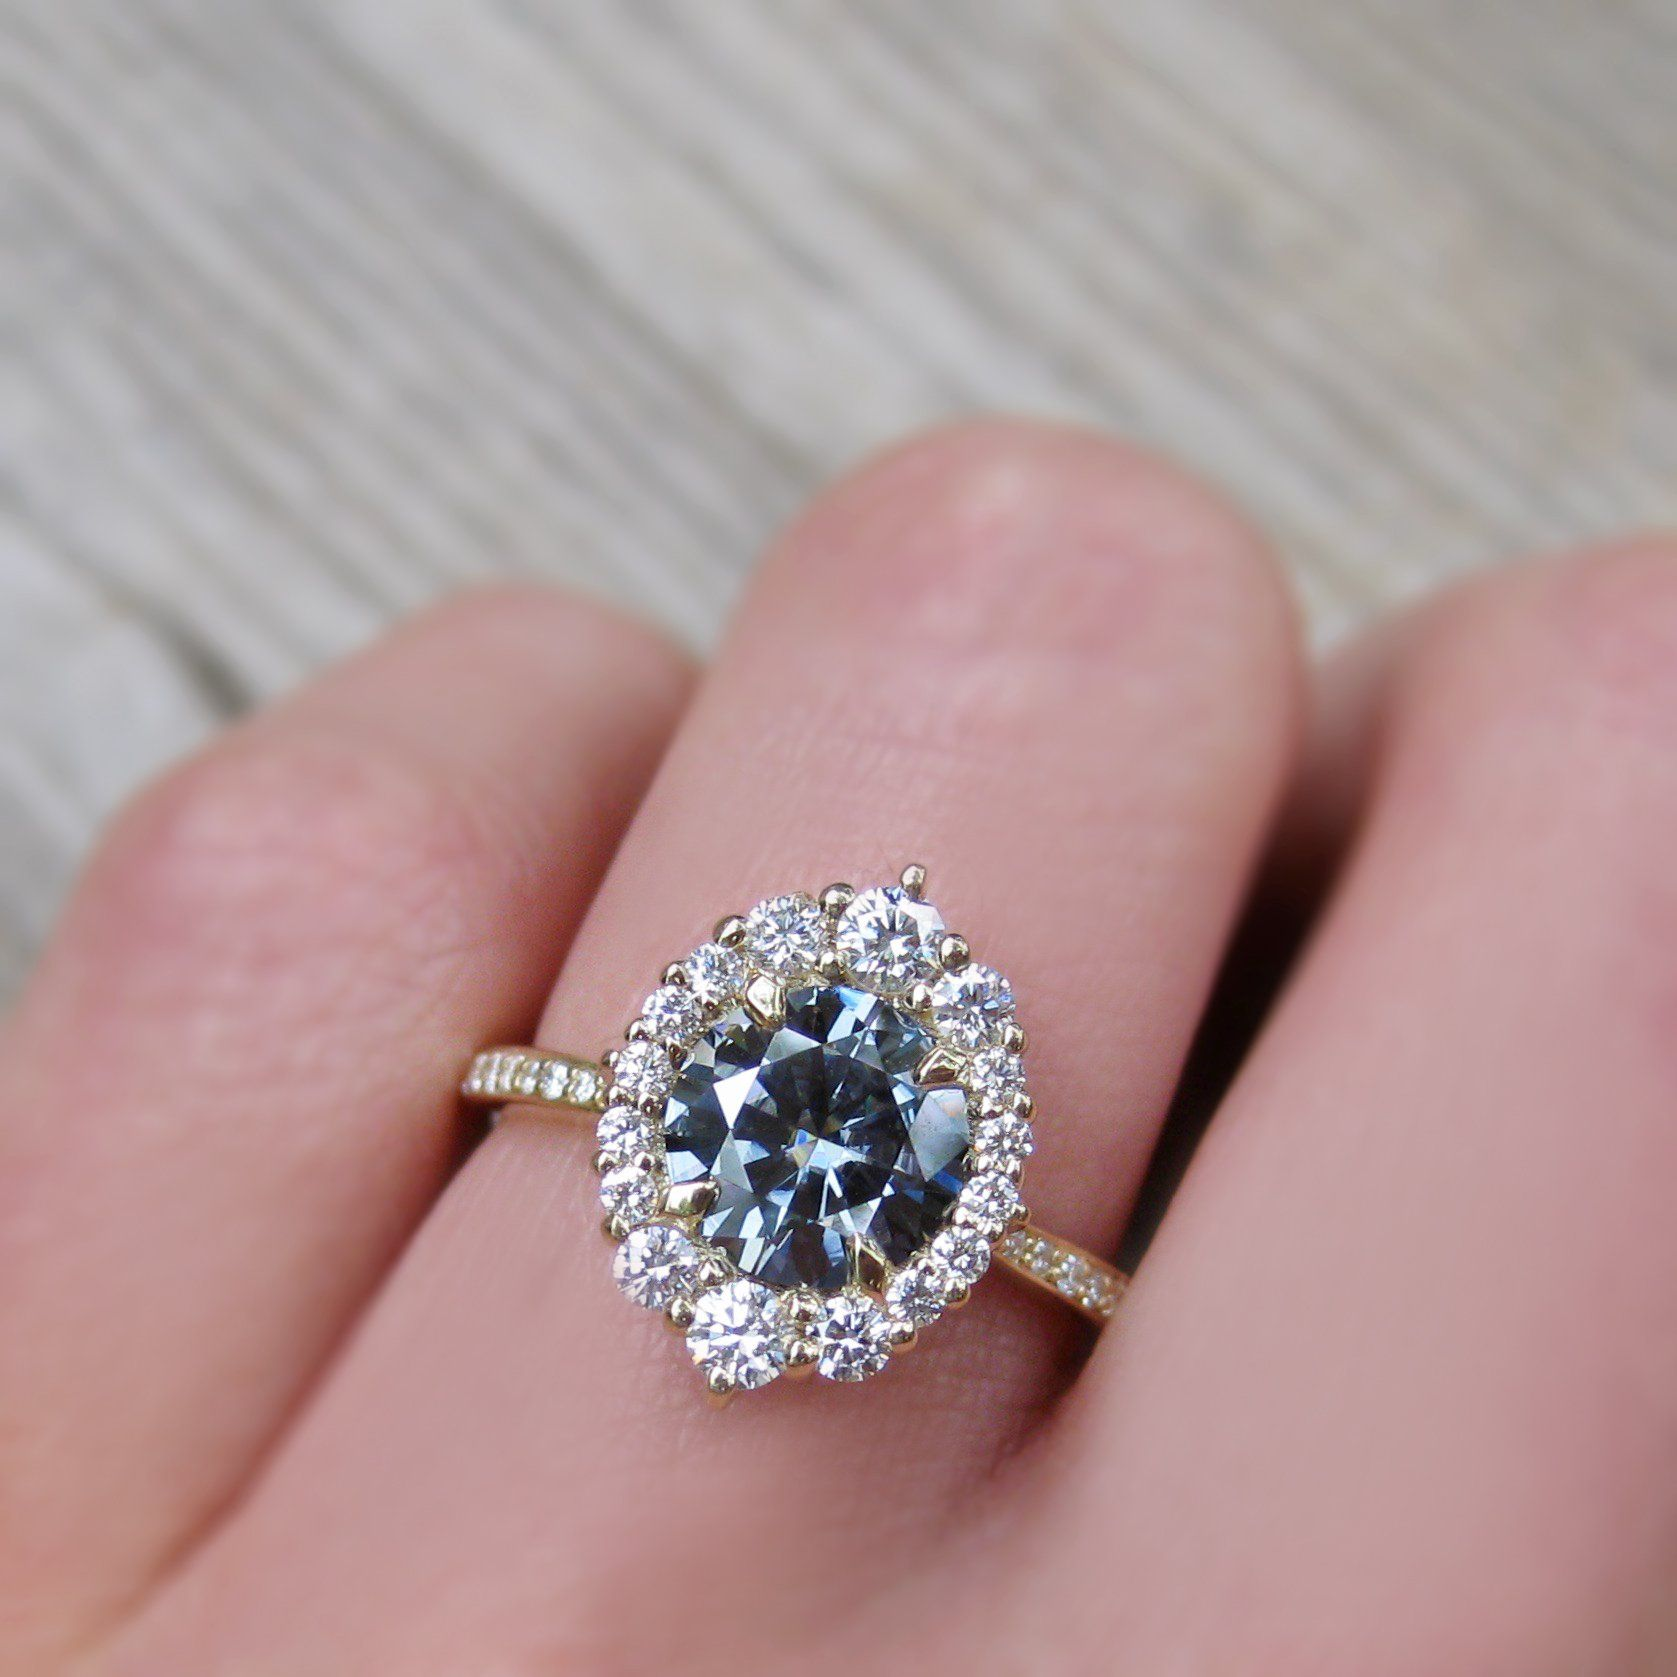 Low profile grey moissanite vintage halo ring in rose gold with an ...